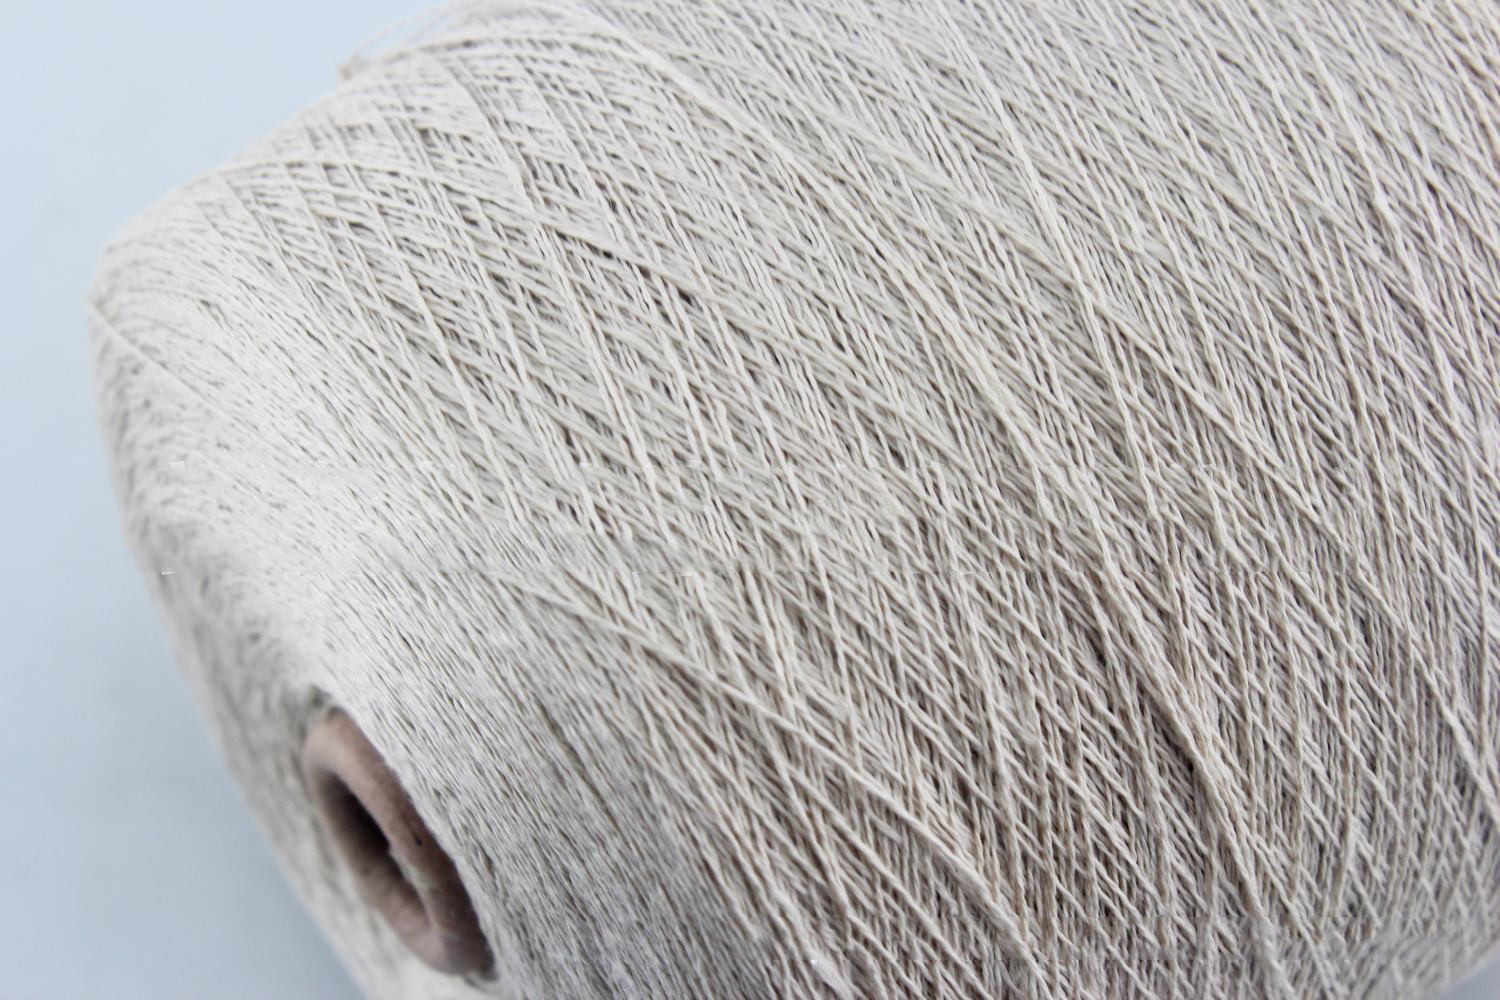 Sợi gai Professional Linen cotton textile and leather manufacturing yarn dyed blond specified wire r